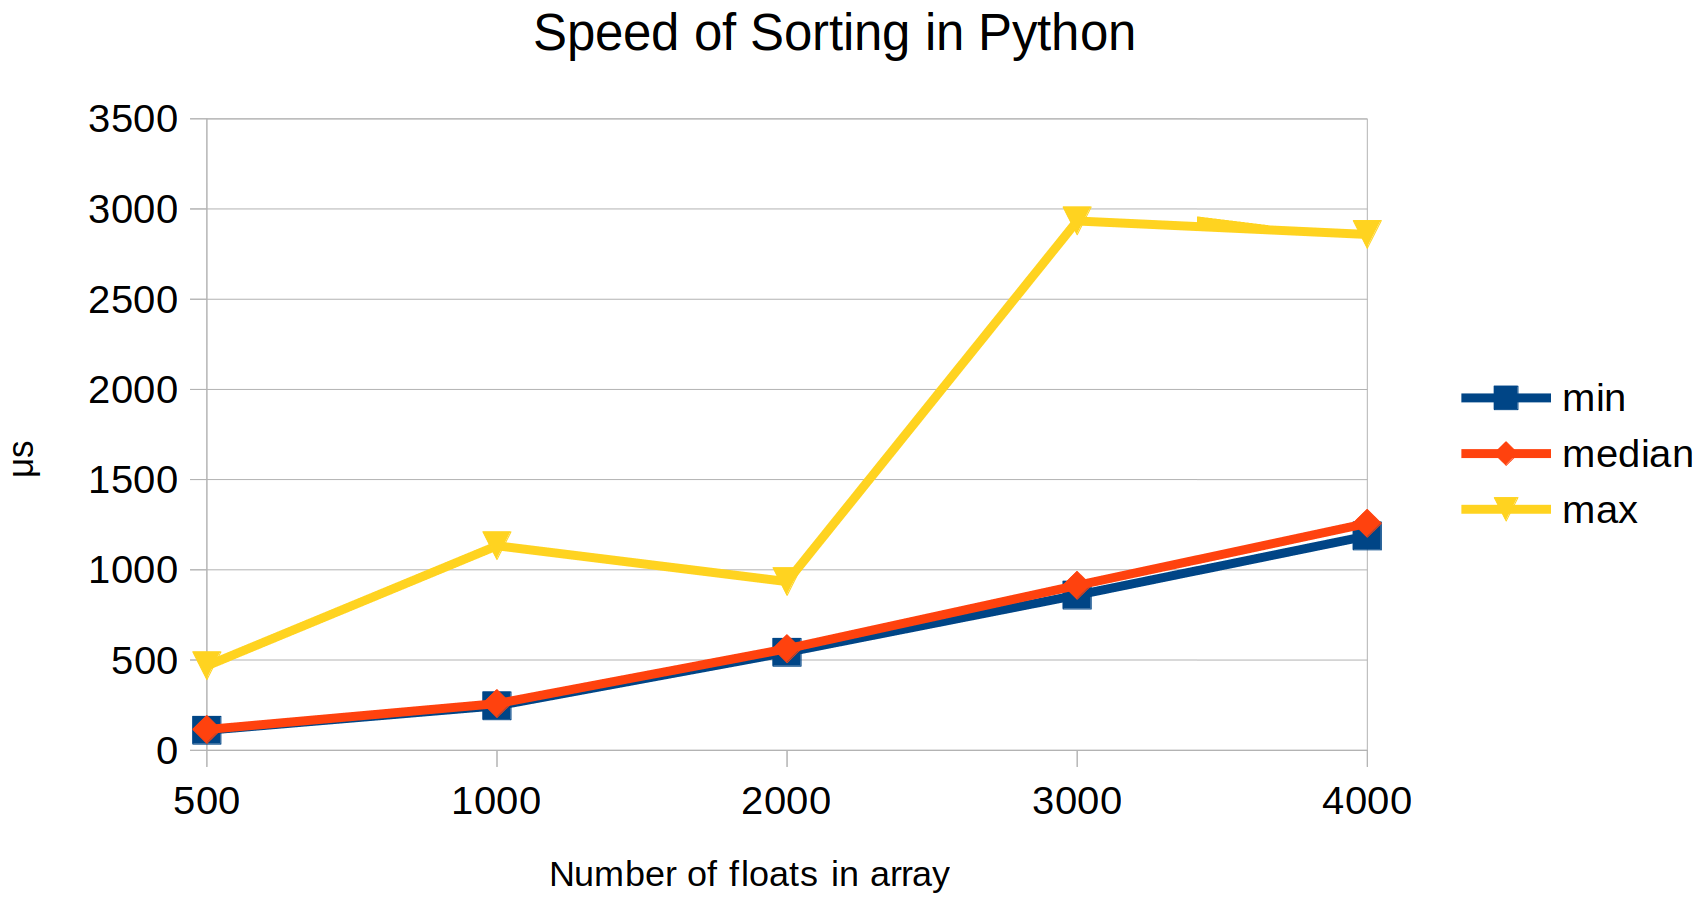 Sorting speed in Python